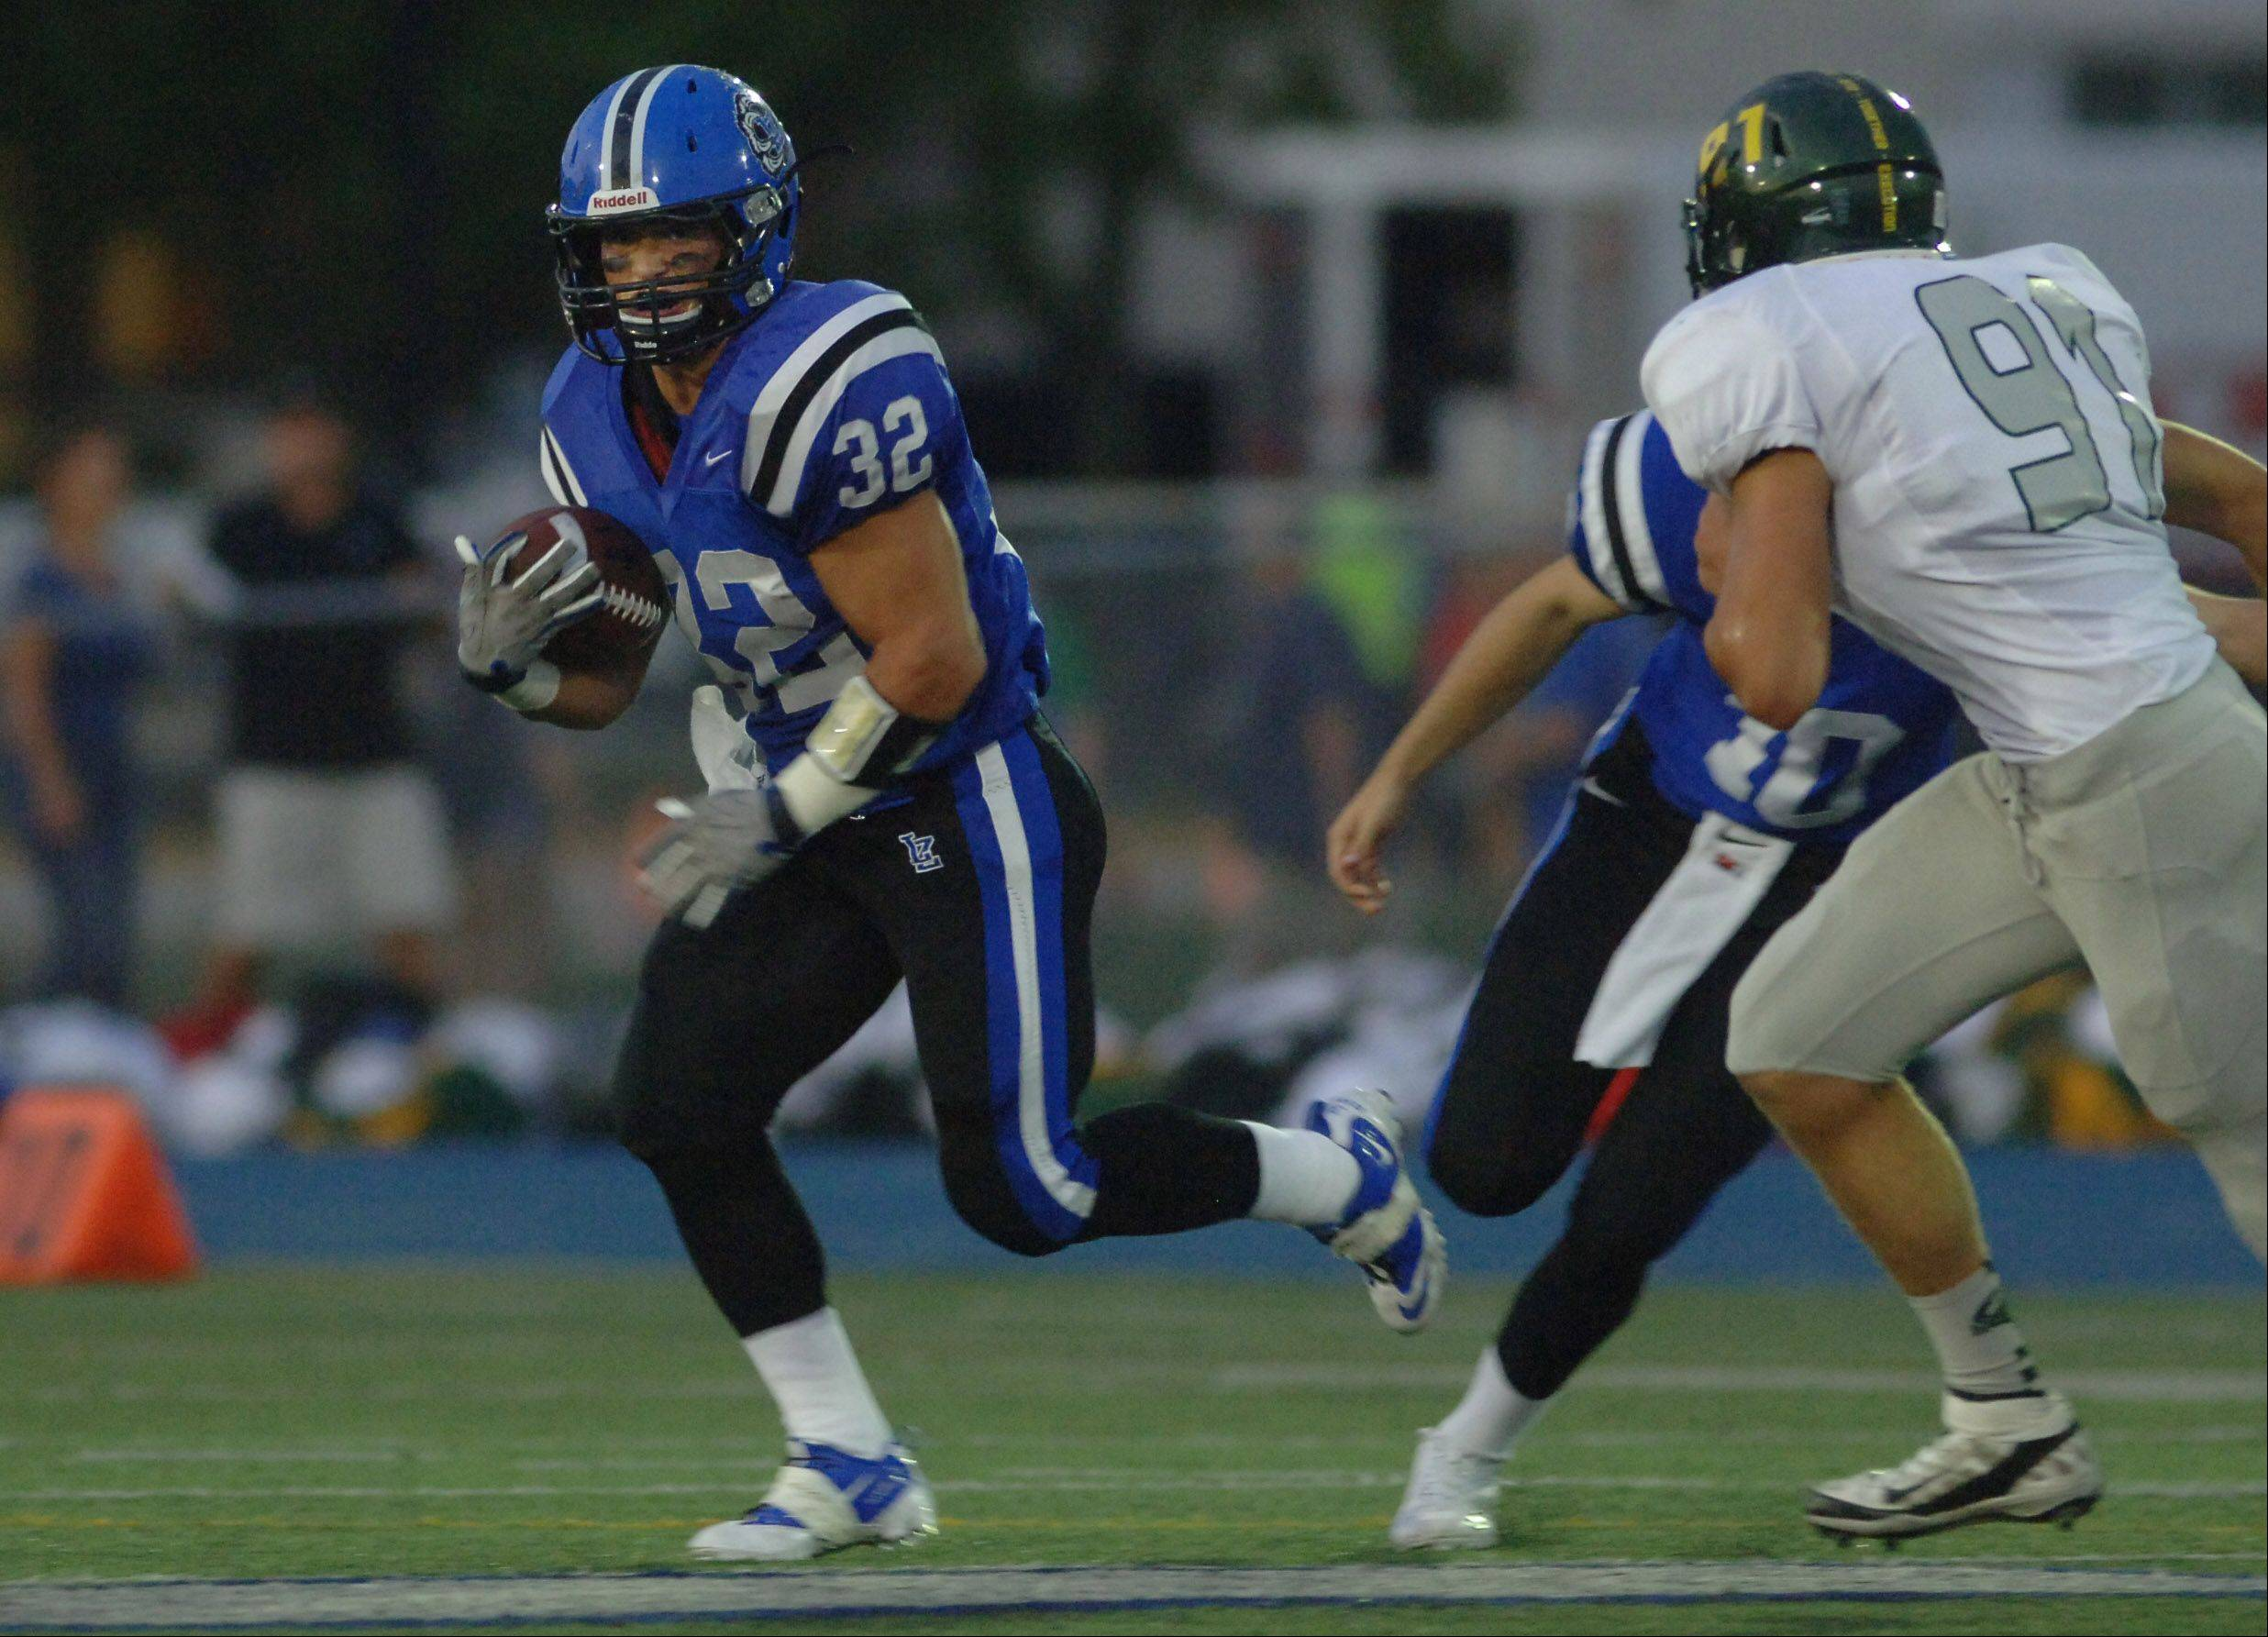 Lake Zurich's Connor Schrader finds running room against Fremd.